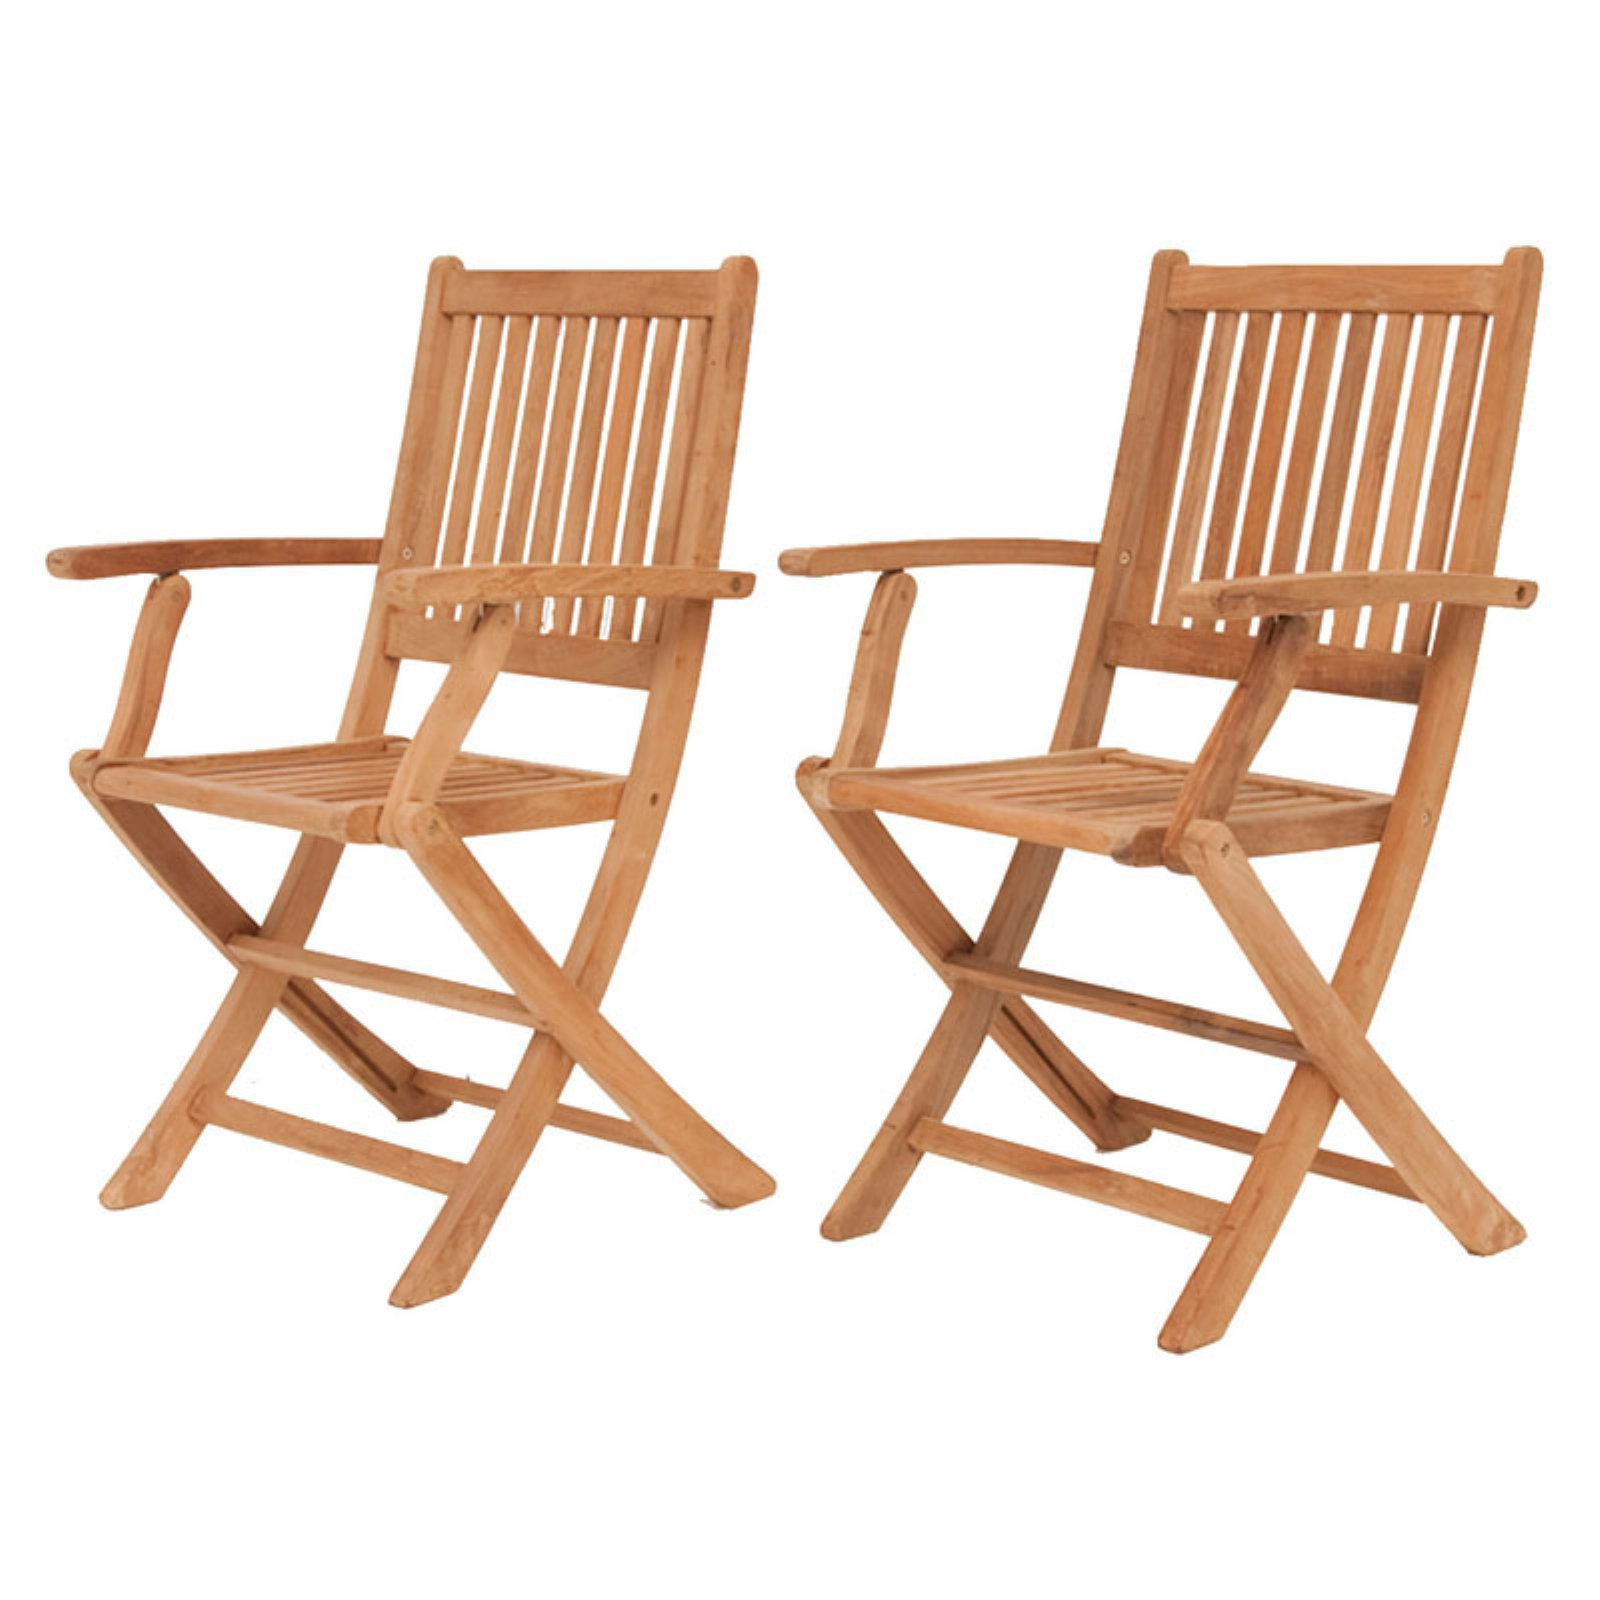 Amazonia Sandford Teak Wood Outdoor Folding Armchairs, Set of 2, Light Brown by International Home Miami